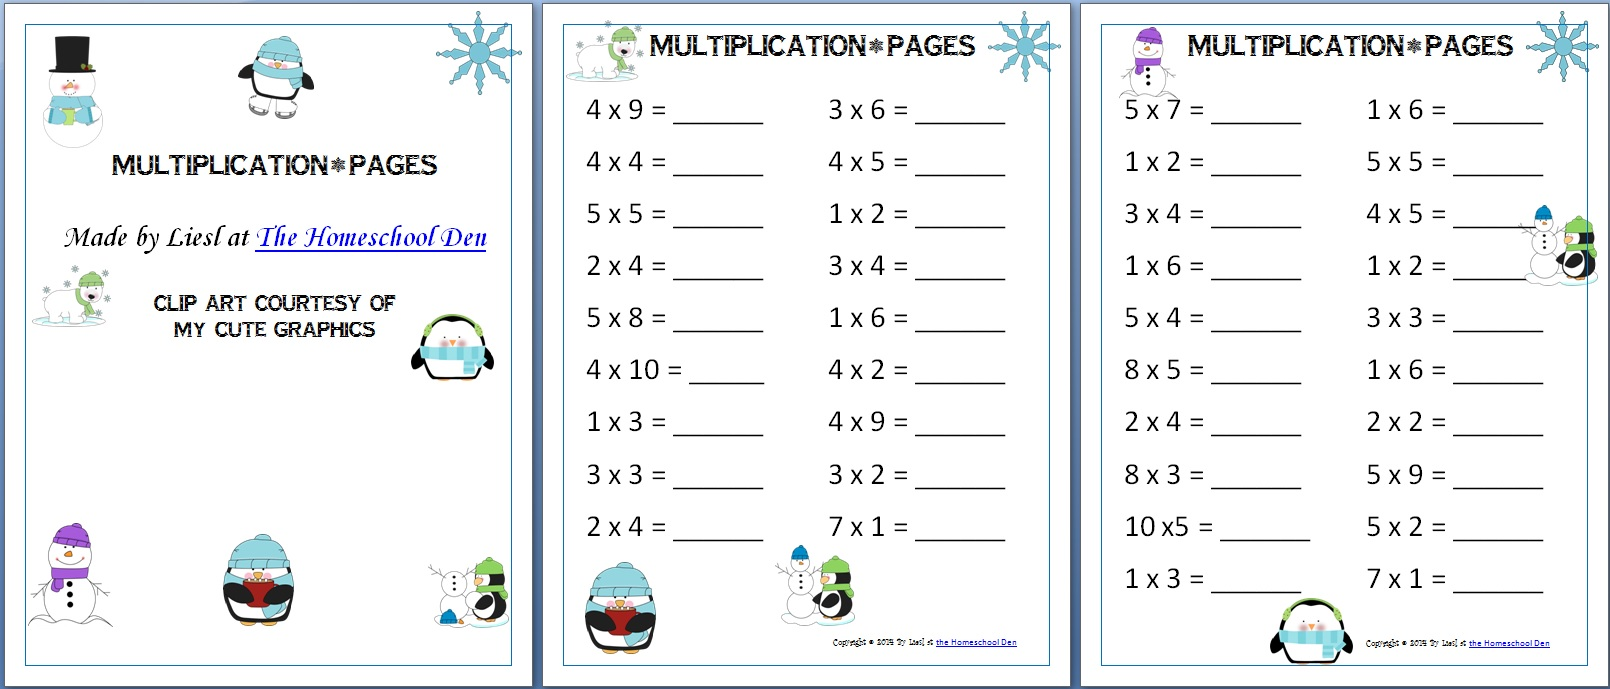 Workbooks worksheets multiplication : Minecraft Christmas Creeper Multiplication, Division and Fraction ...